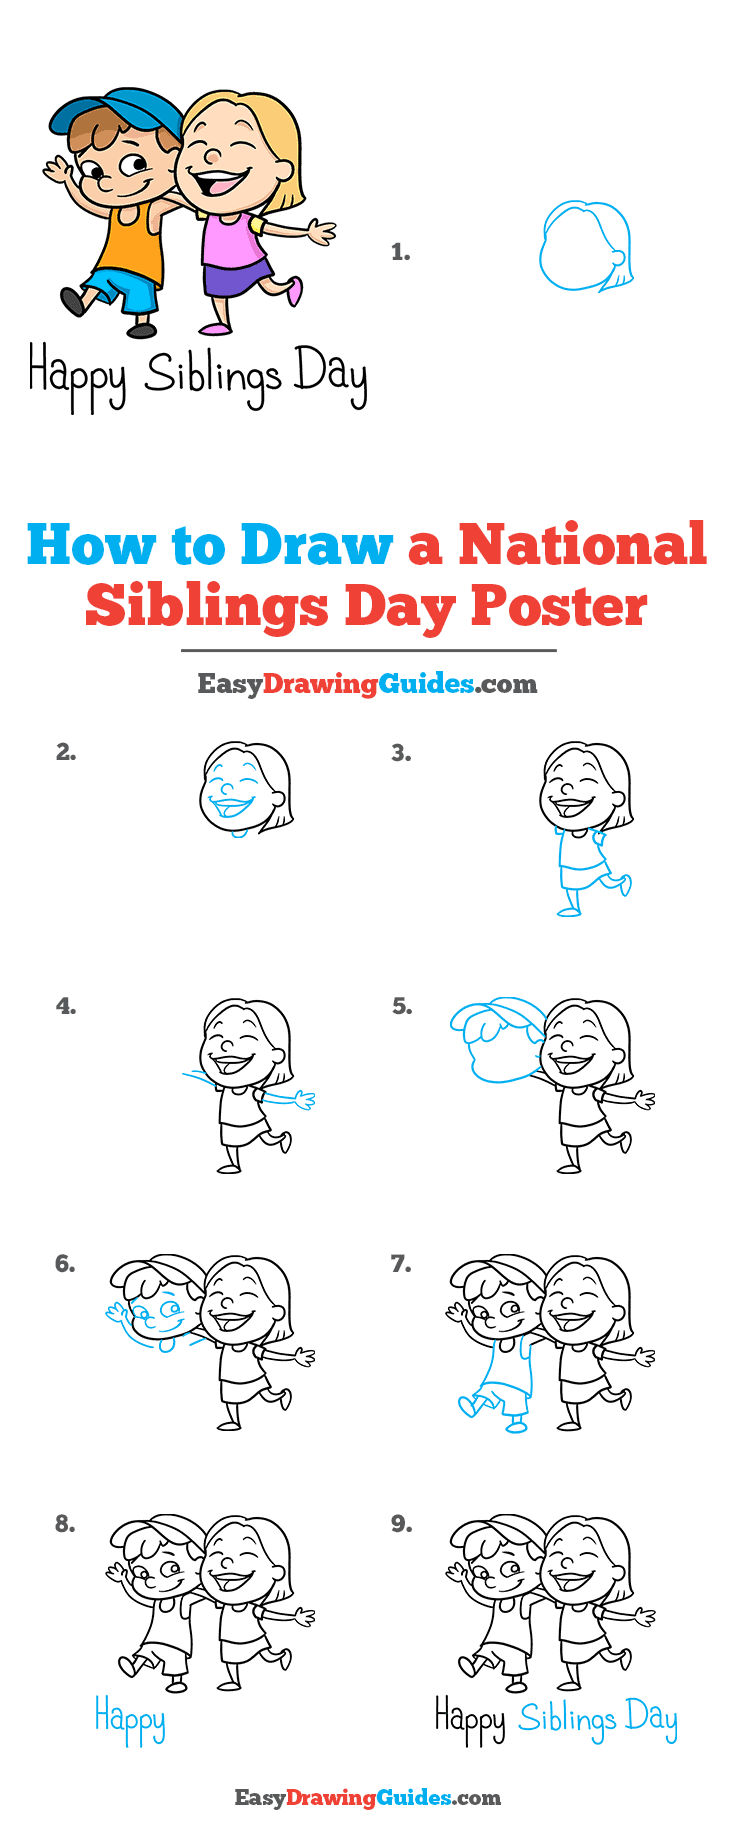 How to Draw a National Siblings Day Poster Step by Step Tutorial Image